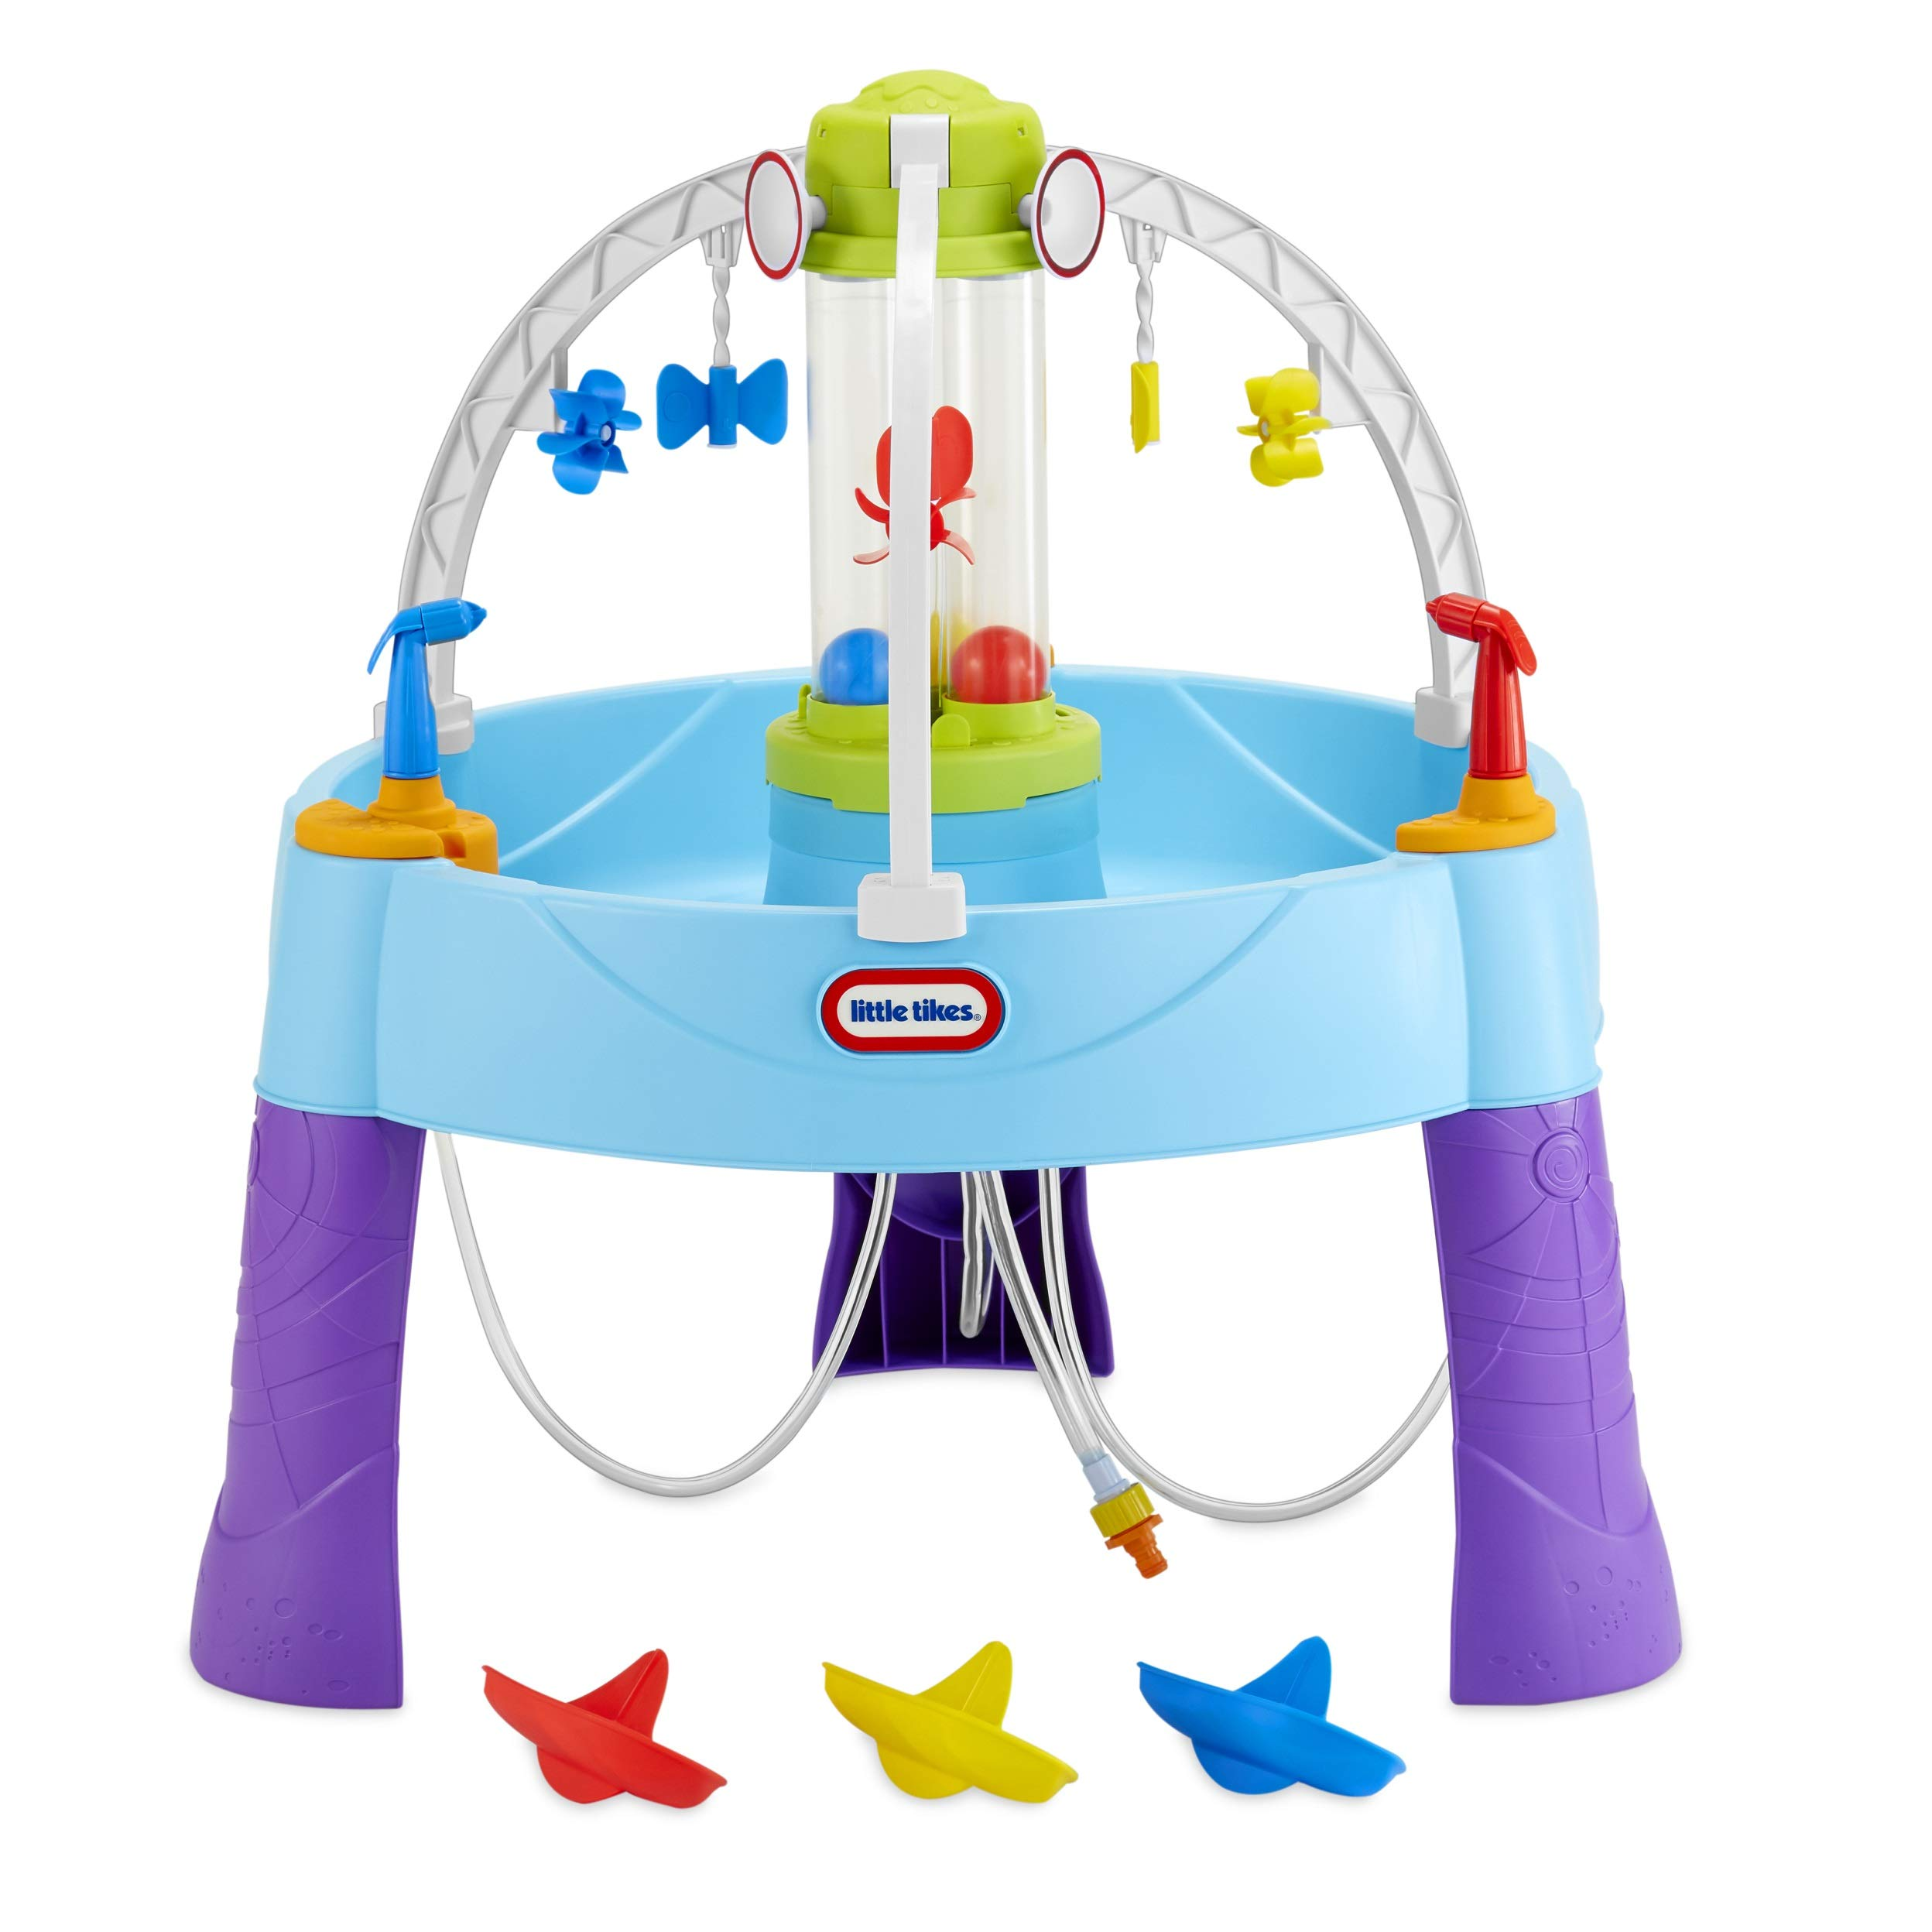 Little Tikes Fun Zone Battle Splash Water Play Table Game for Kids by Little Tikes